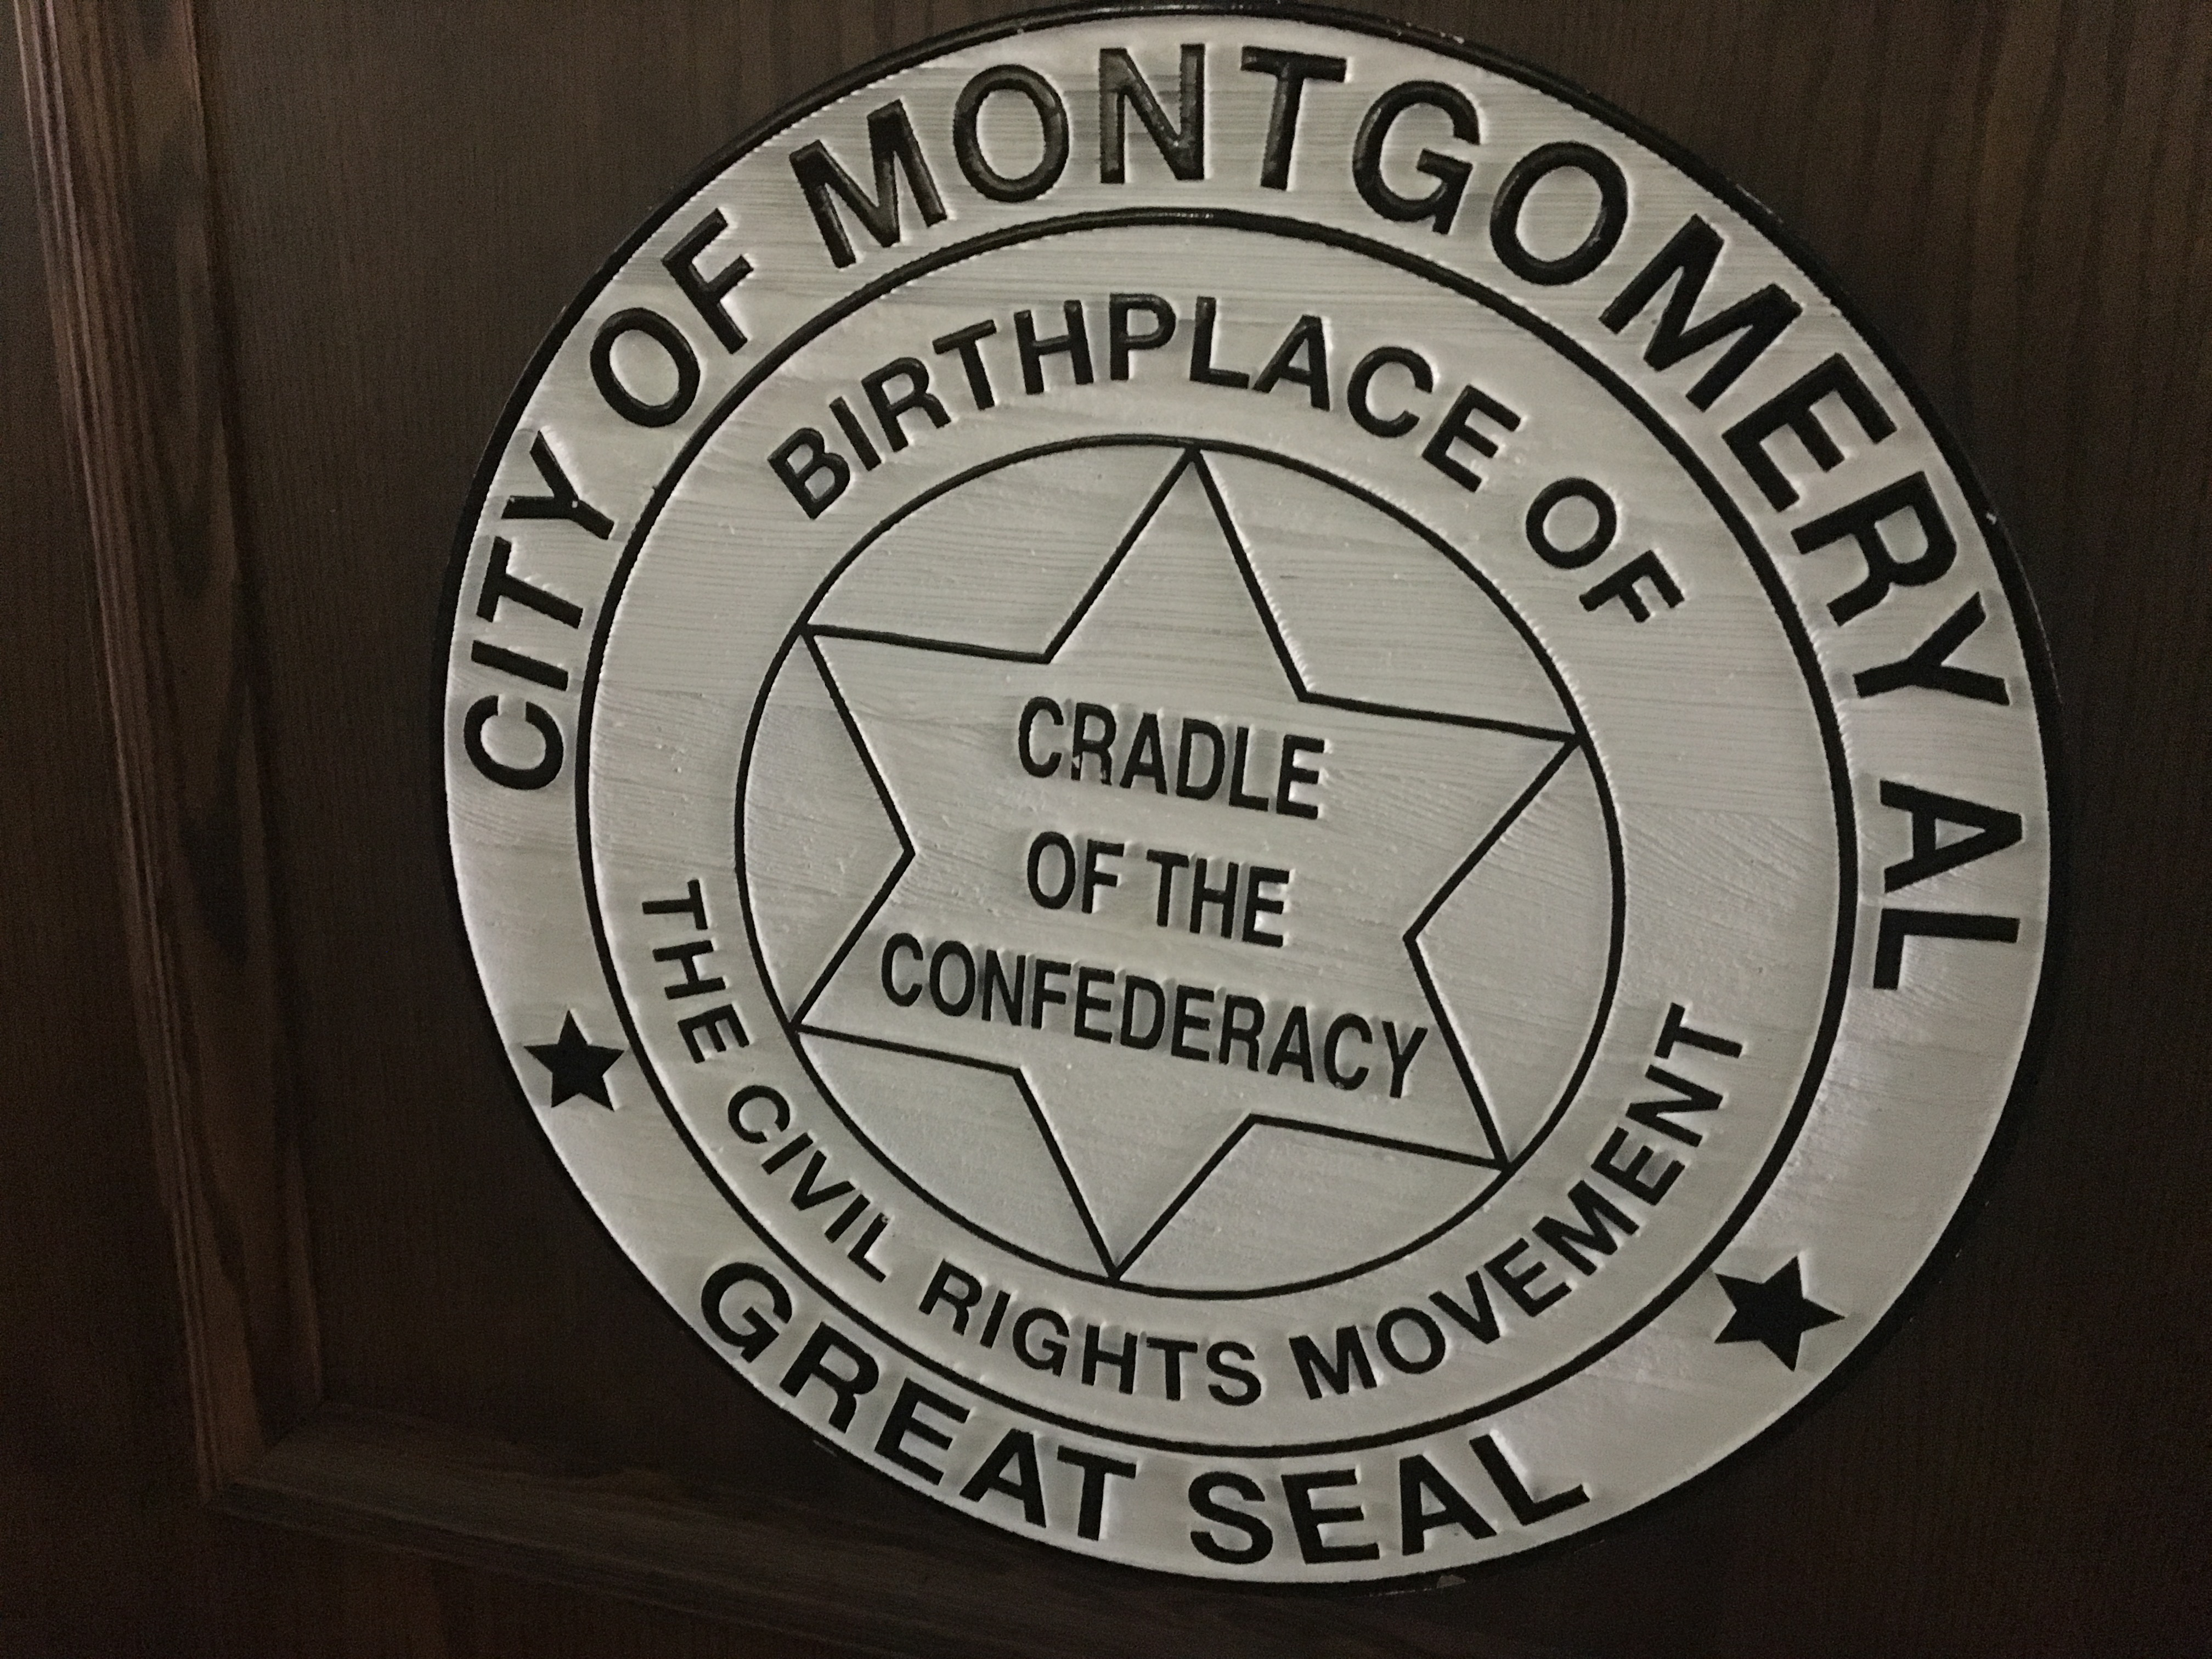 1st black mayor marks new chapter in Montgomery history shaped by race - al.com